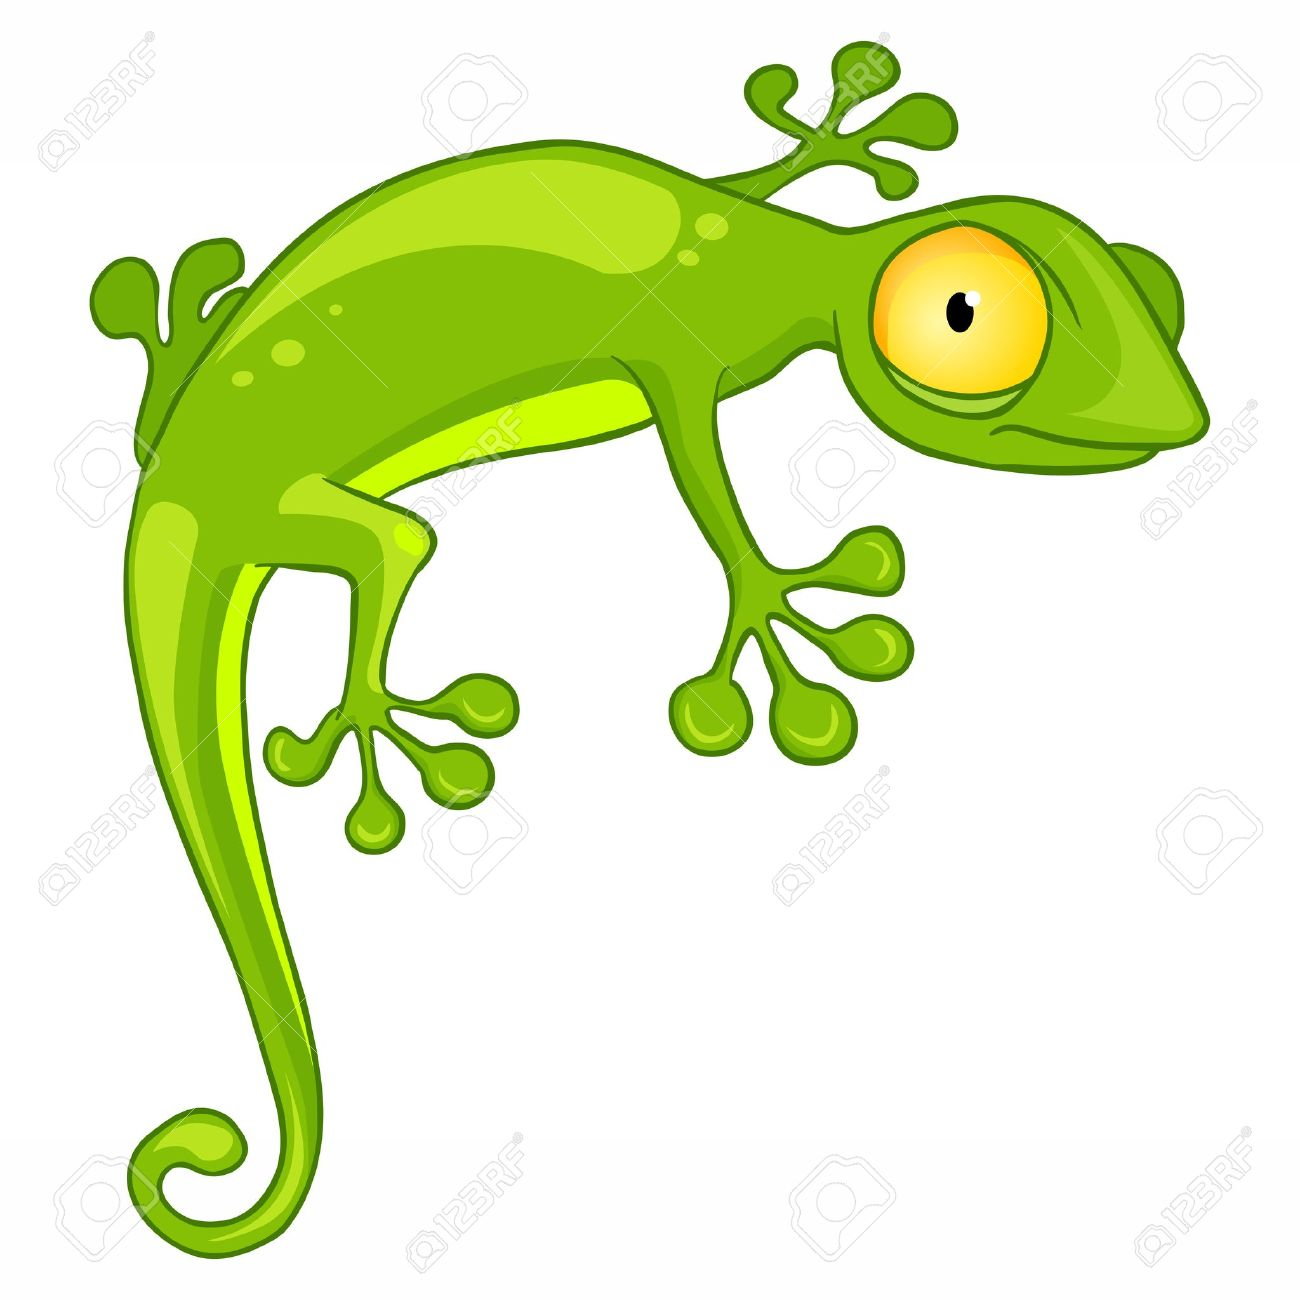 Pictures Of Cartoon Lizards | Free download best Pictures Of ... for Cute Lizard Clipart  1lp1fsj